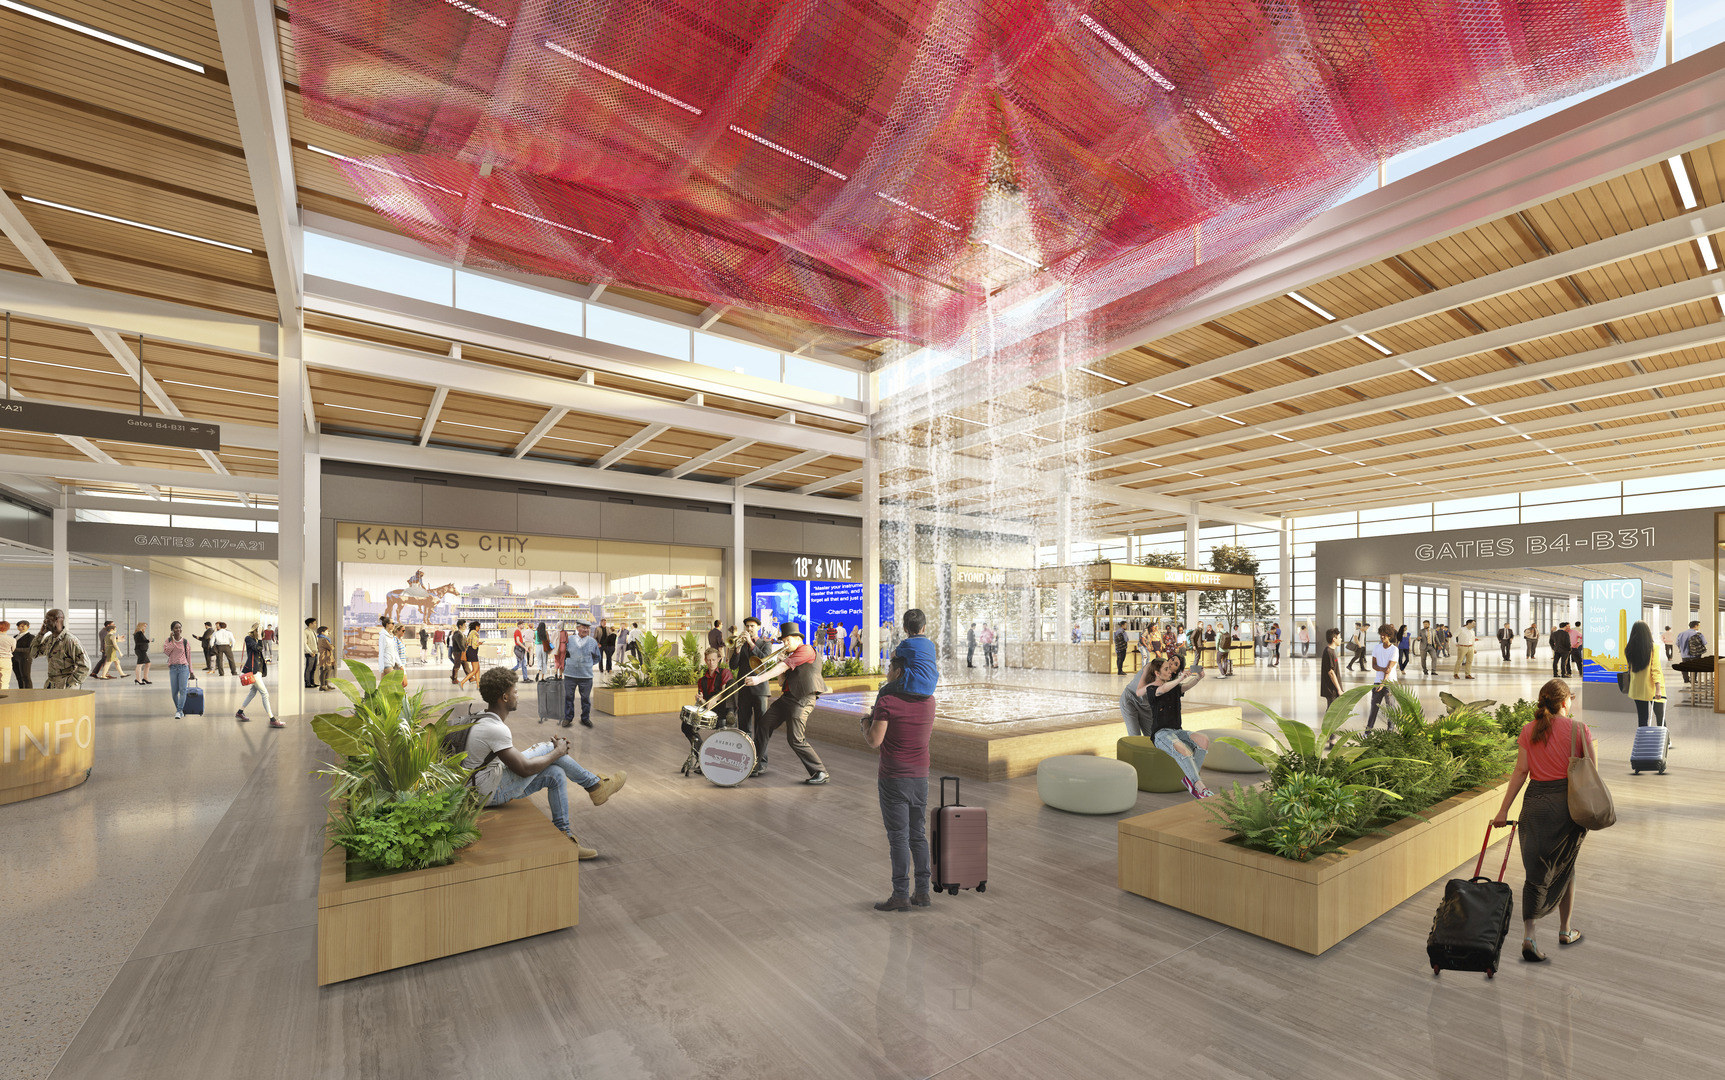 The recent progress on the KCI New Terminal project can be found in the Q4 2019 New Terminal Project Update